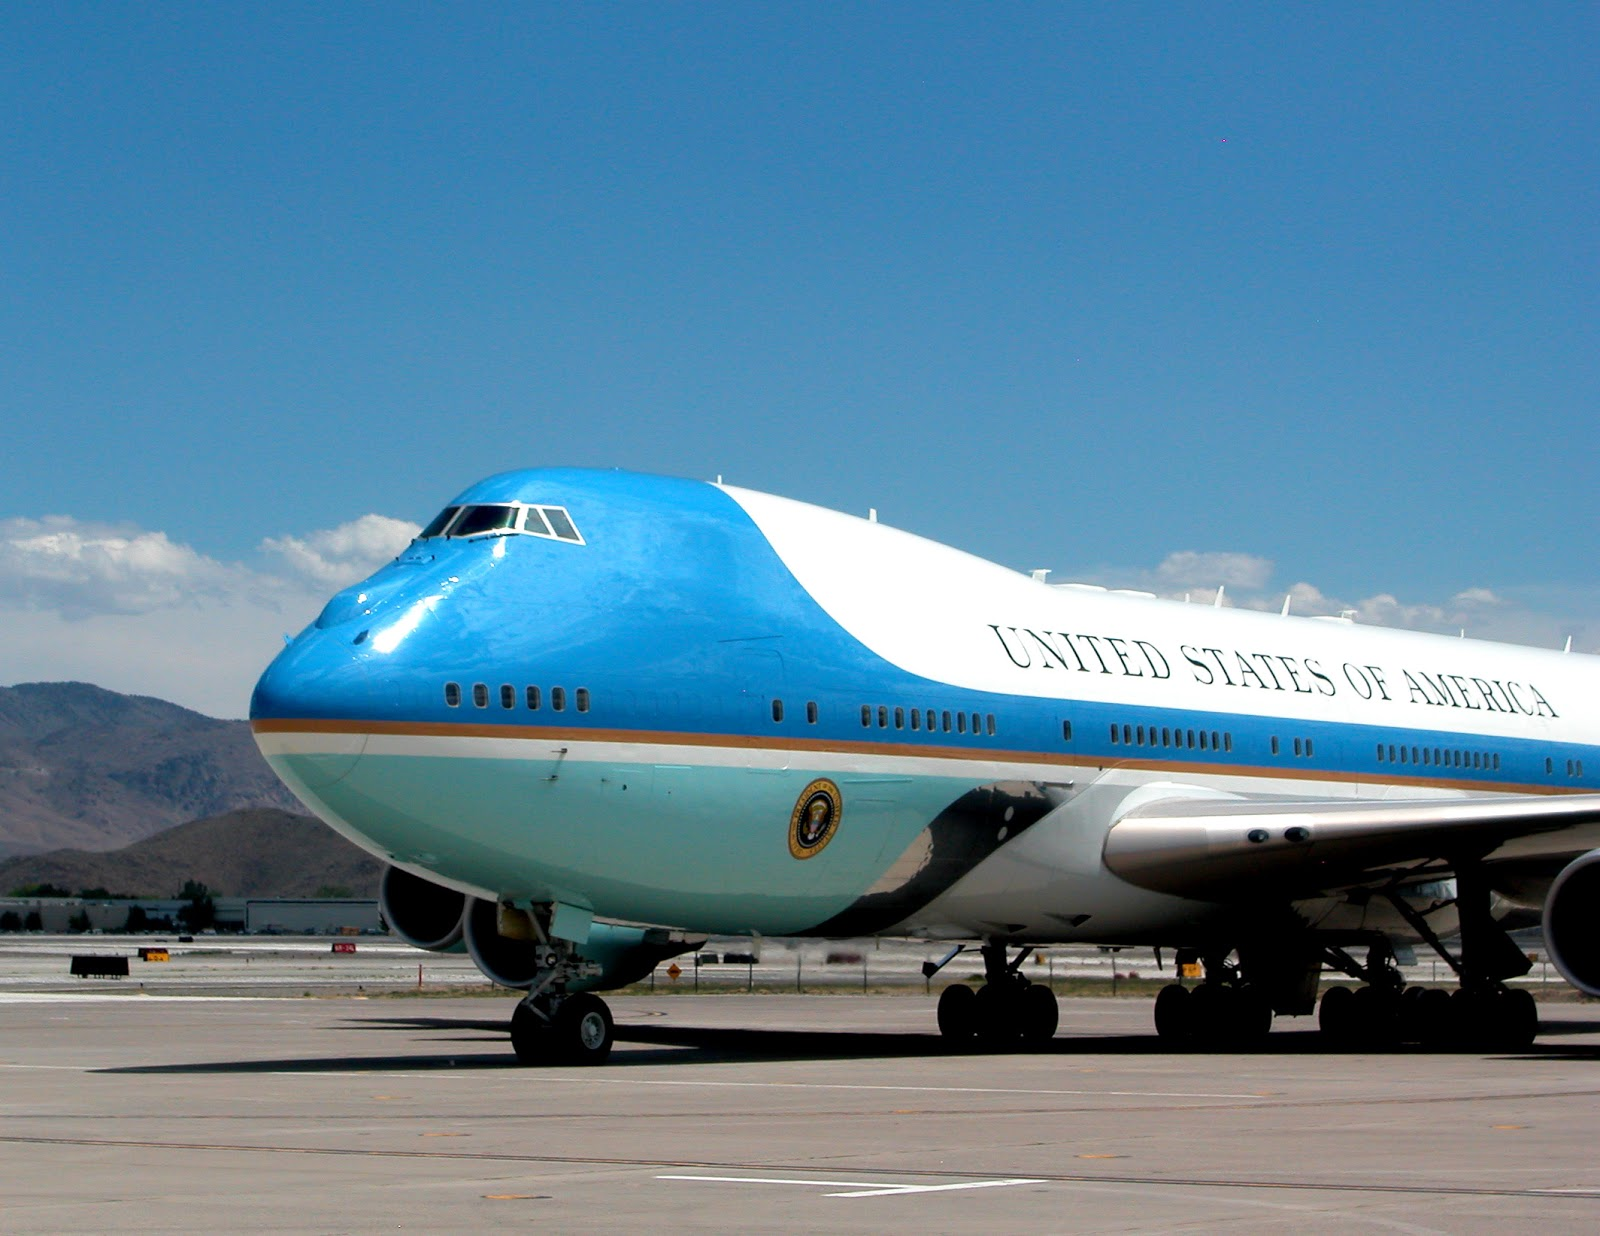 sandy air force one arrives